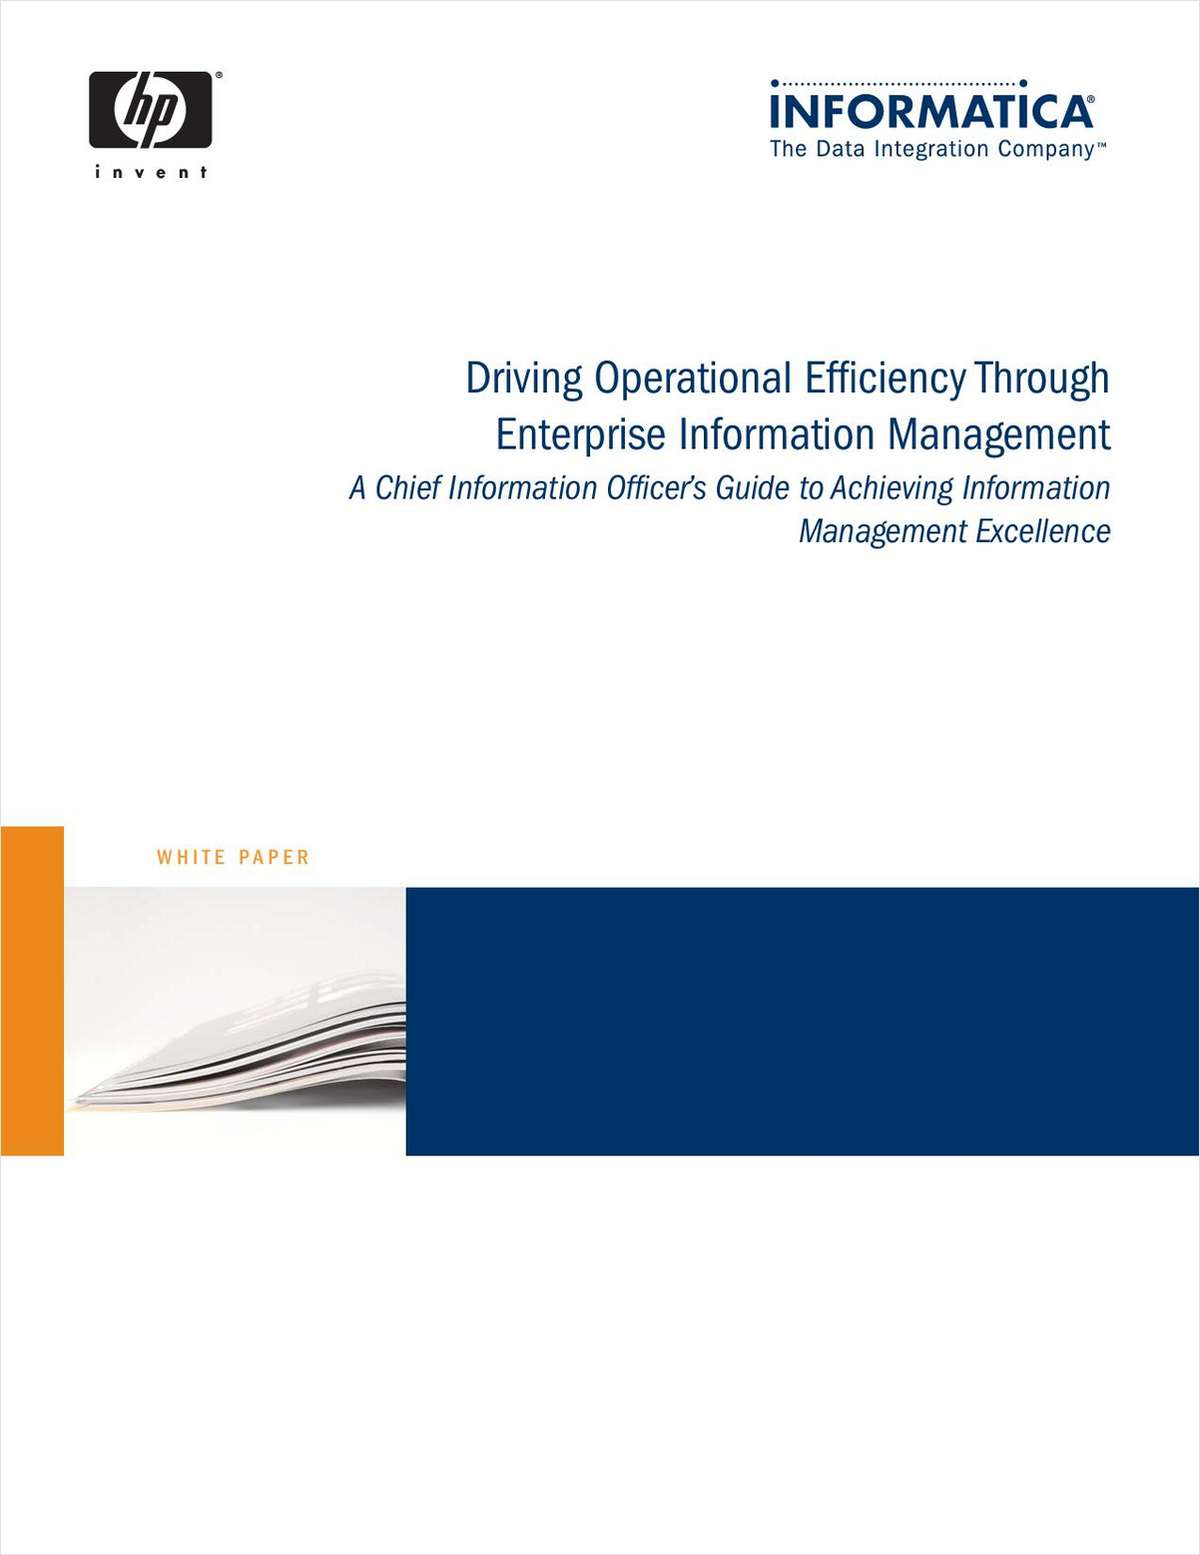 A CIO's Guide to Achieving Information Management Excellence